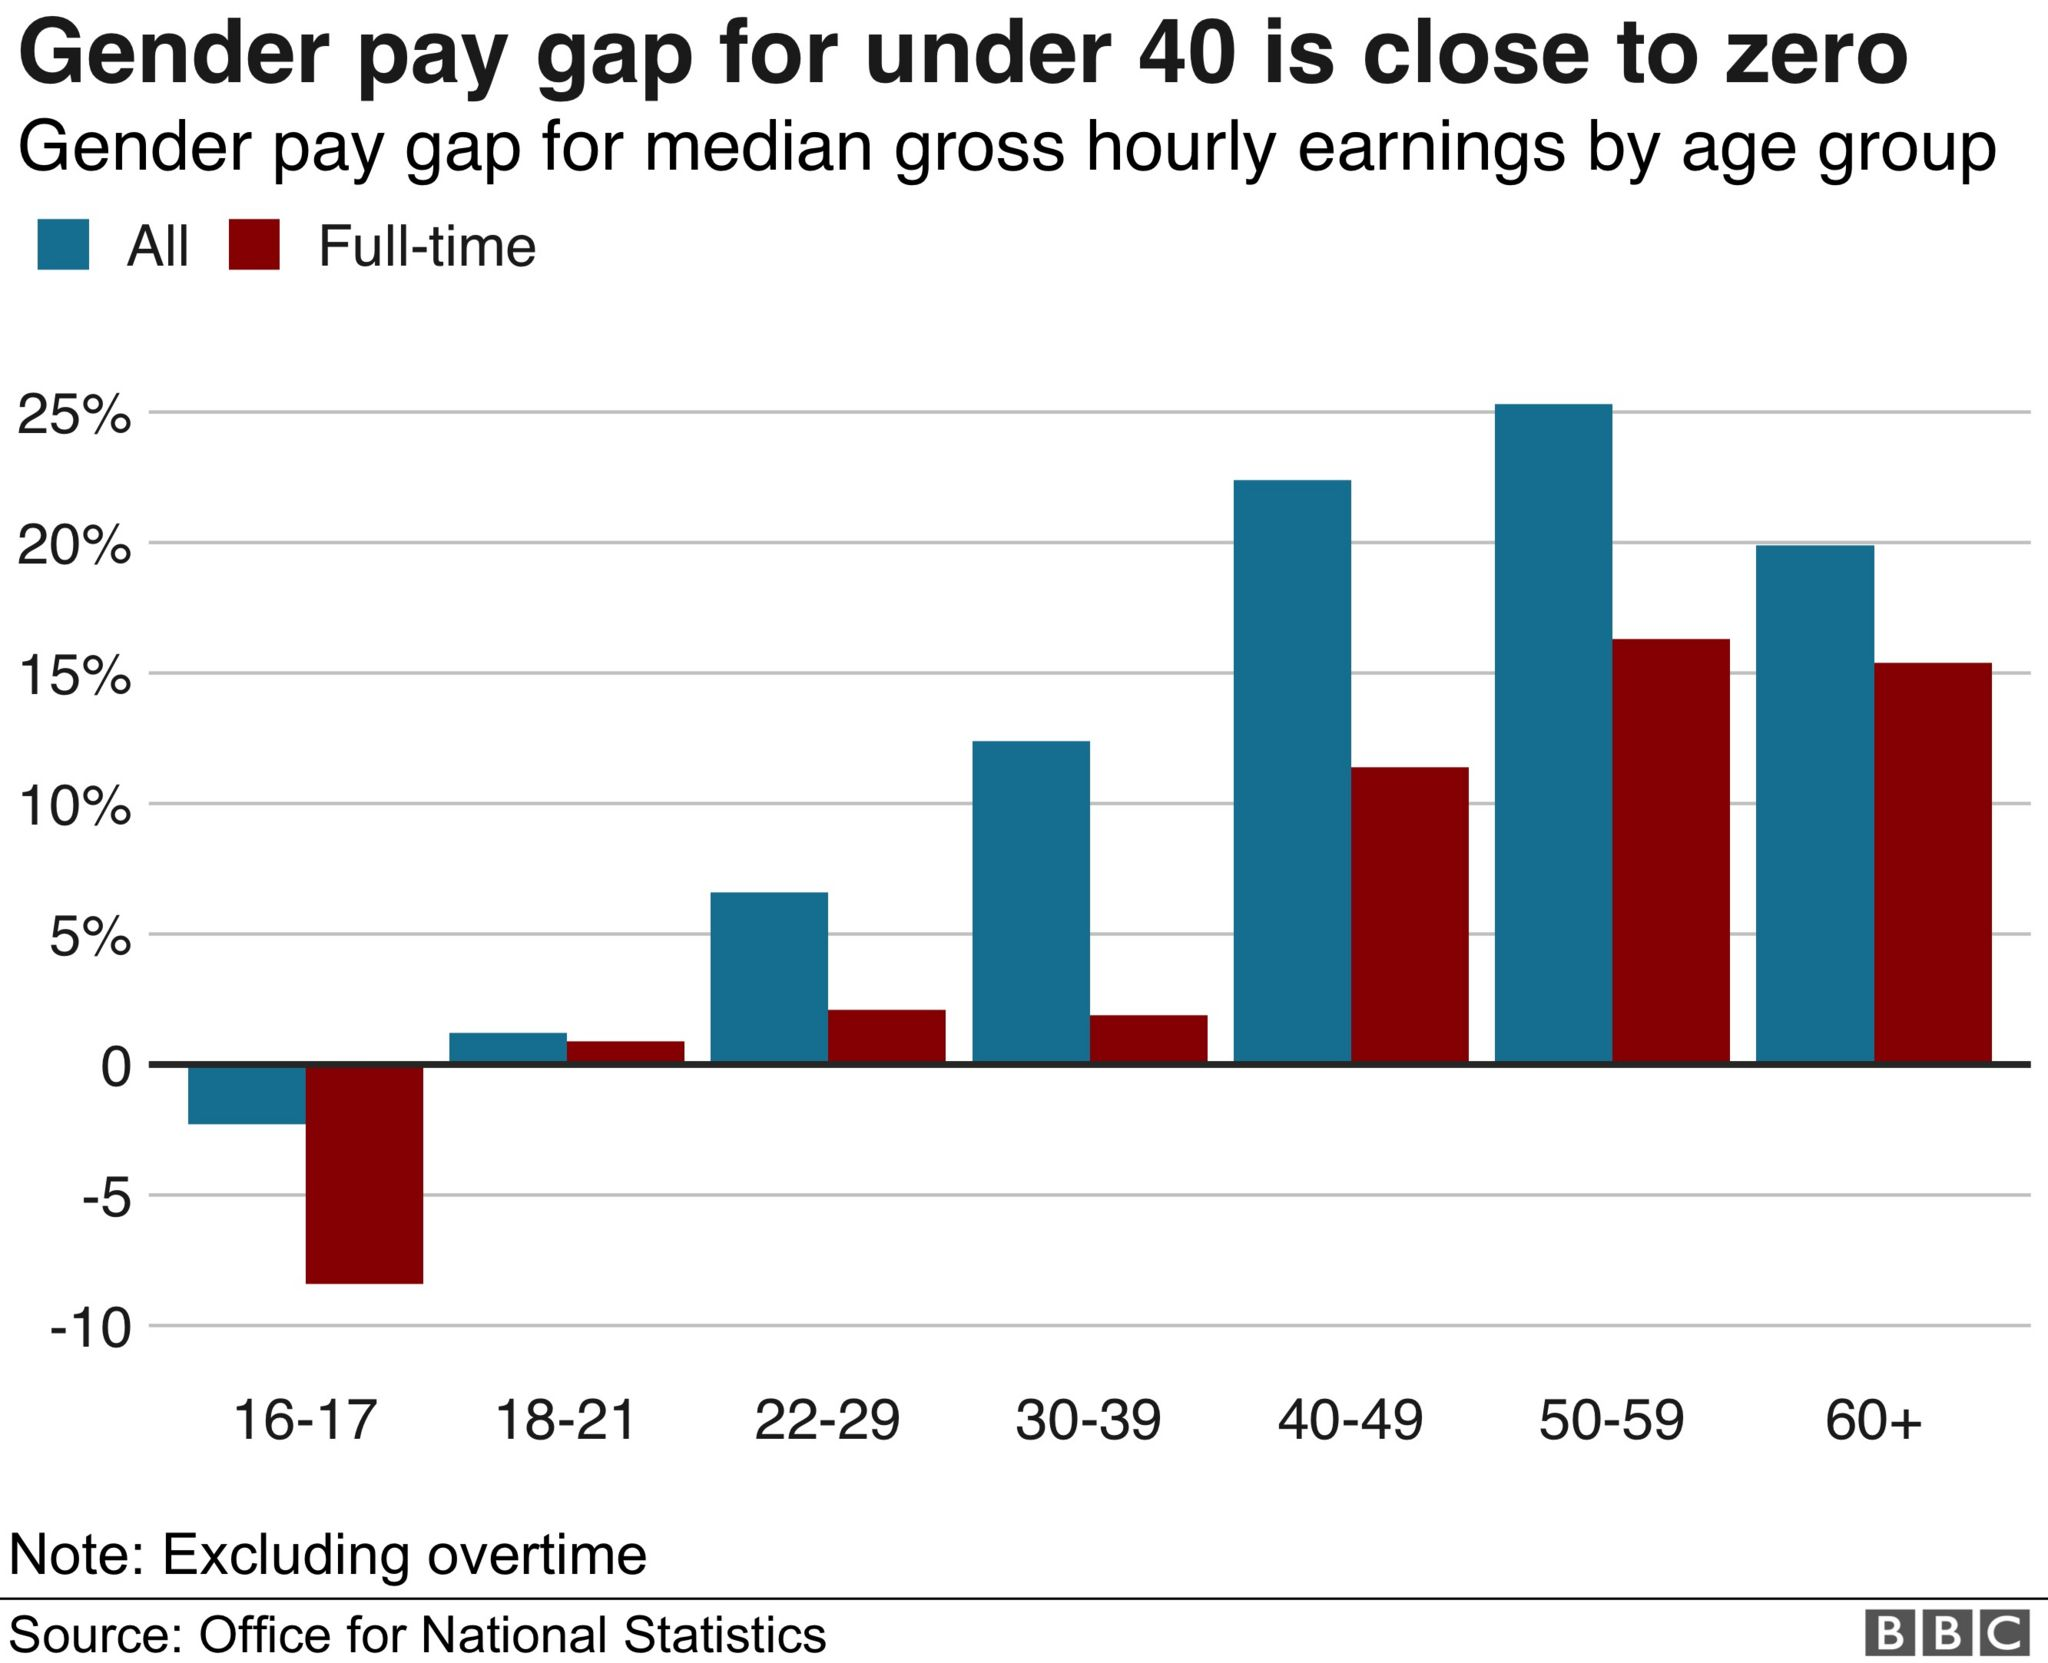 Gender pay gap by age group graphic